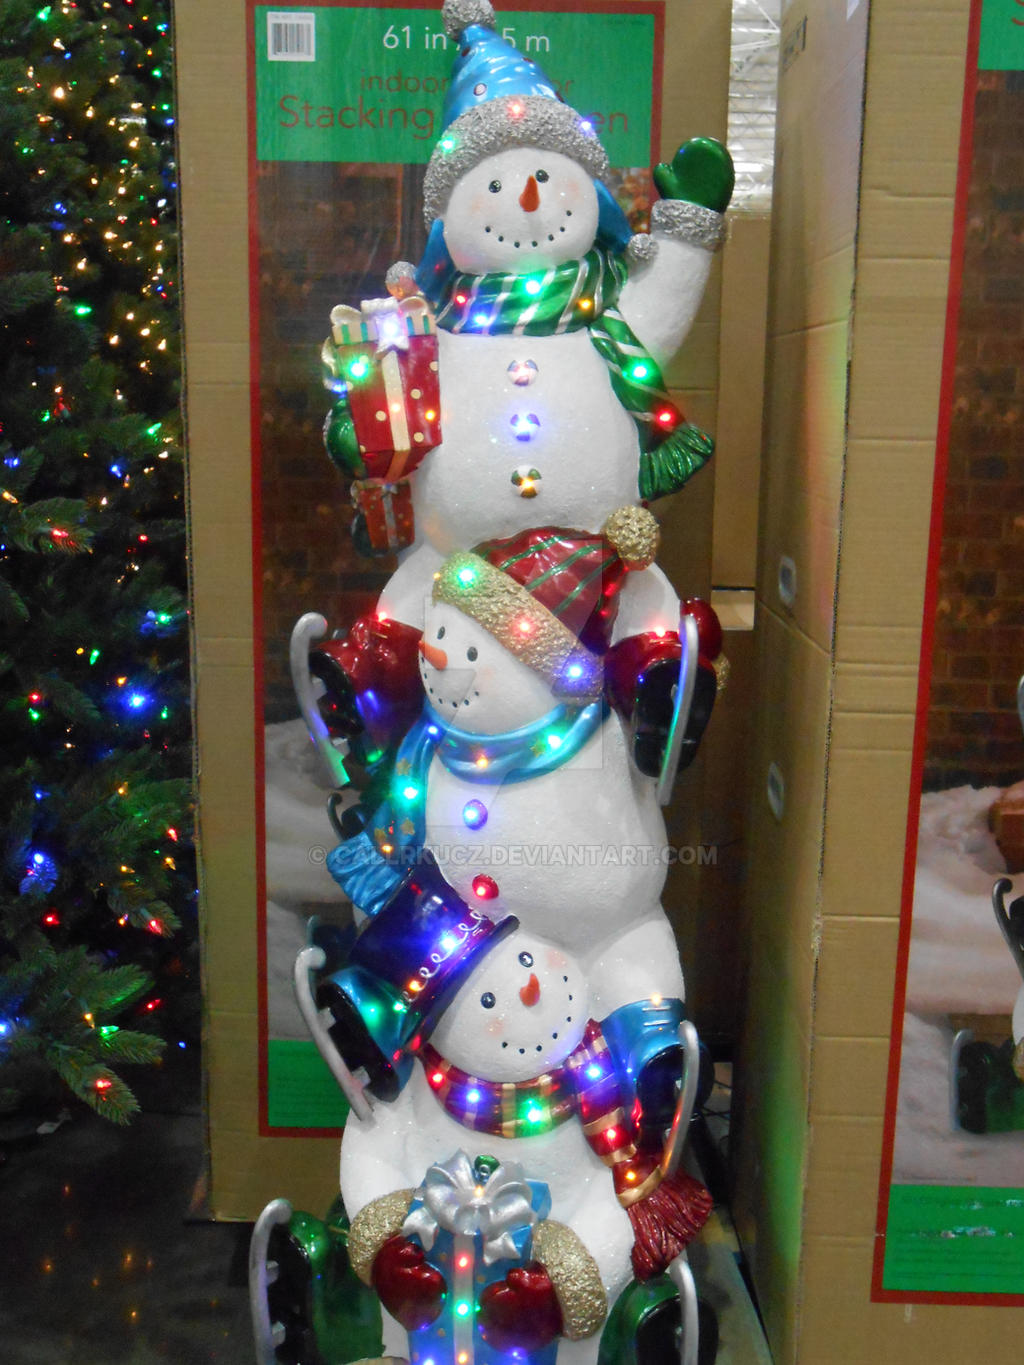 Snowman christmas decoration at costco by callrkucz on